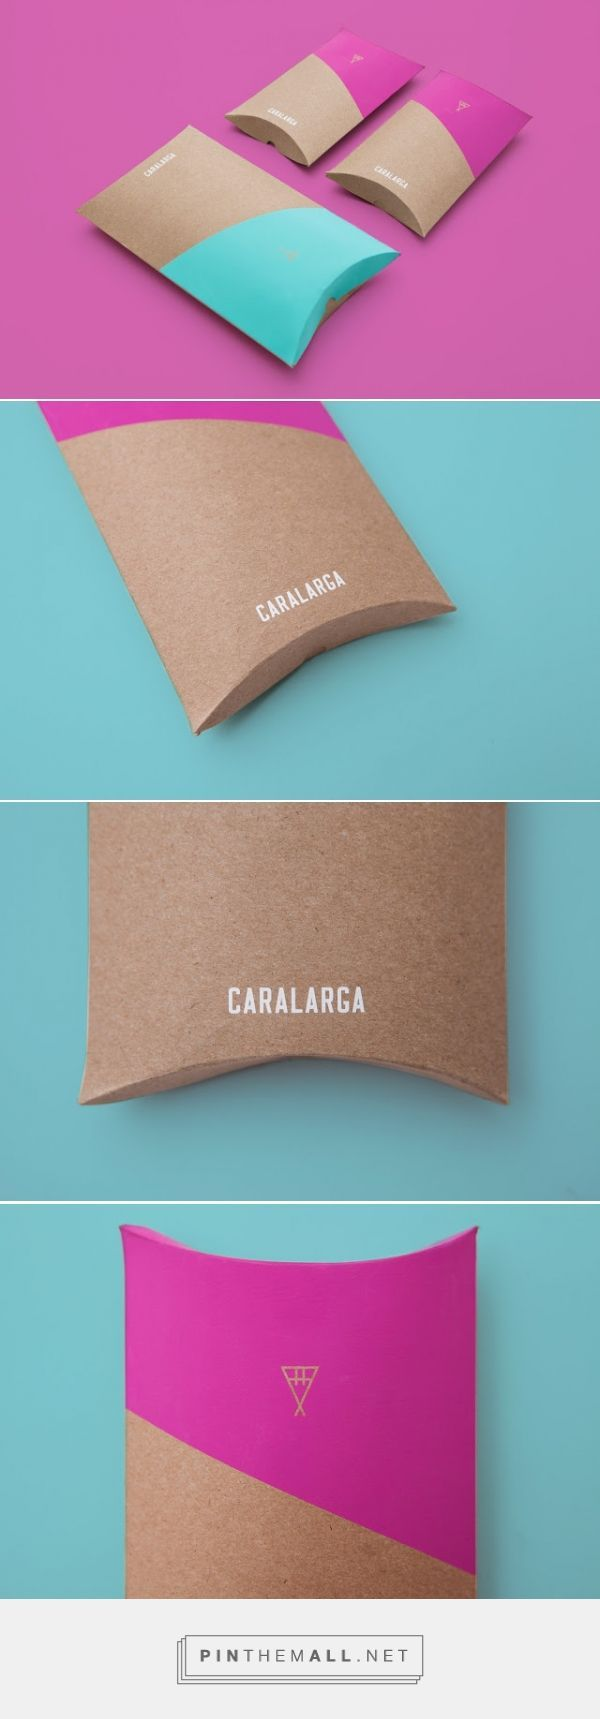 CARALARGA #prettypackaging